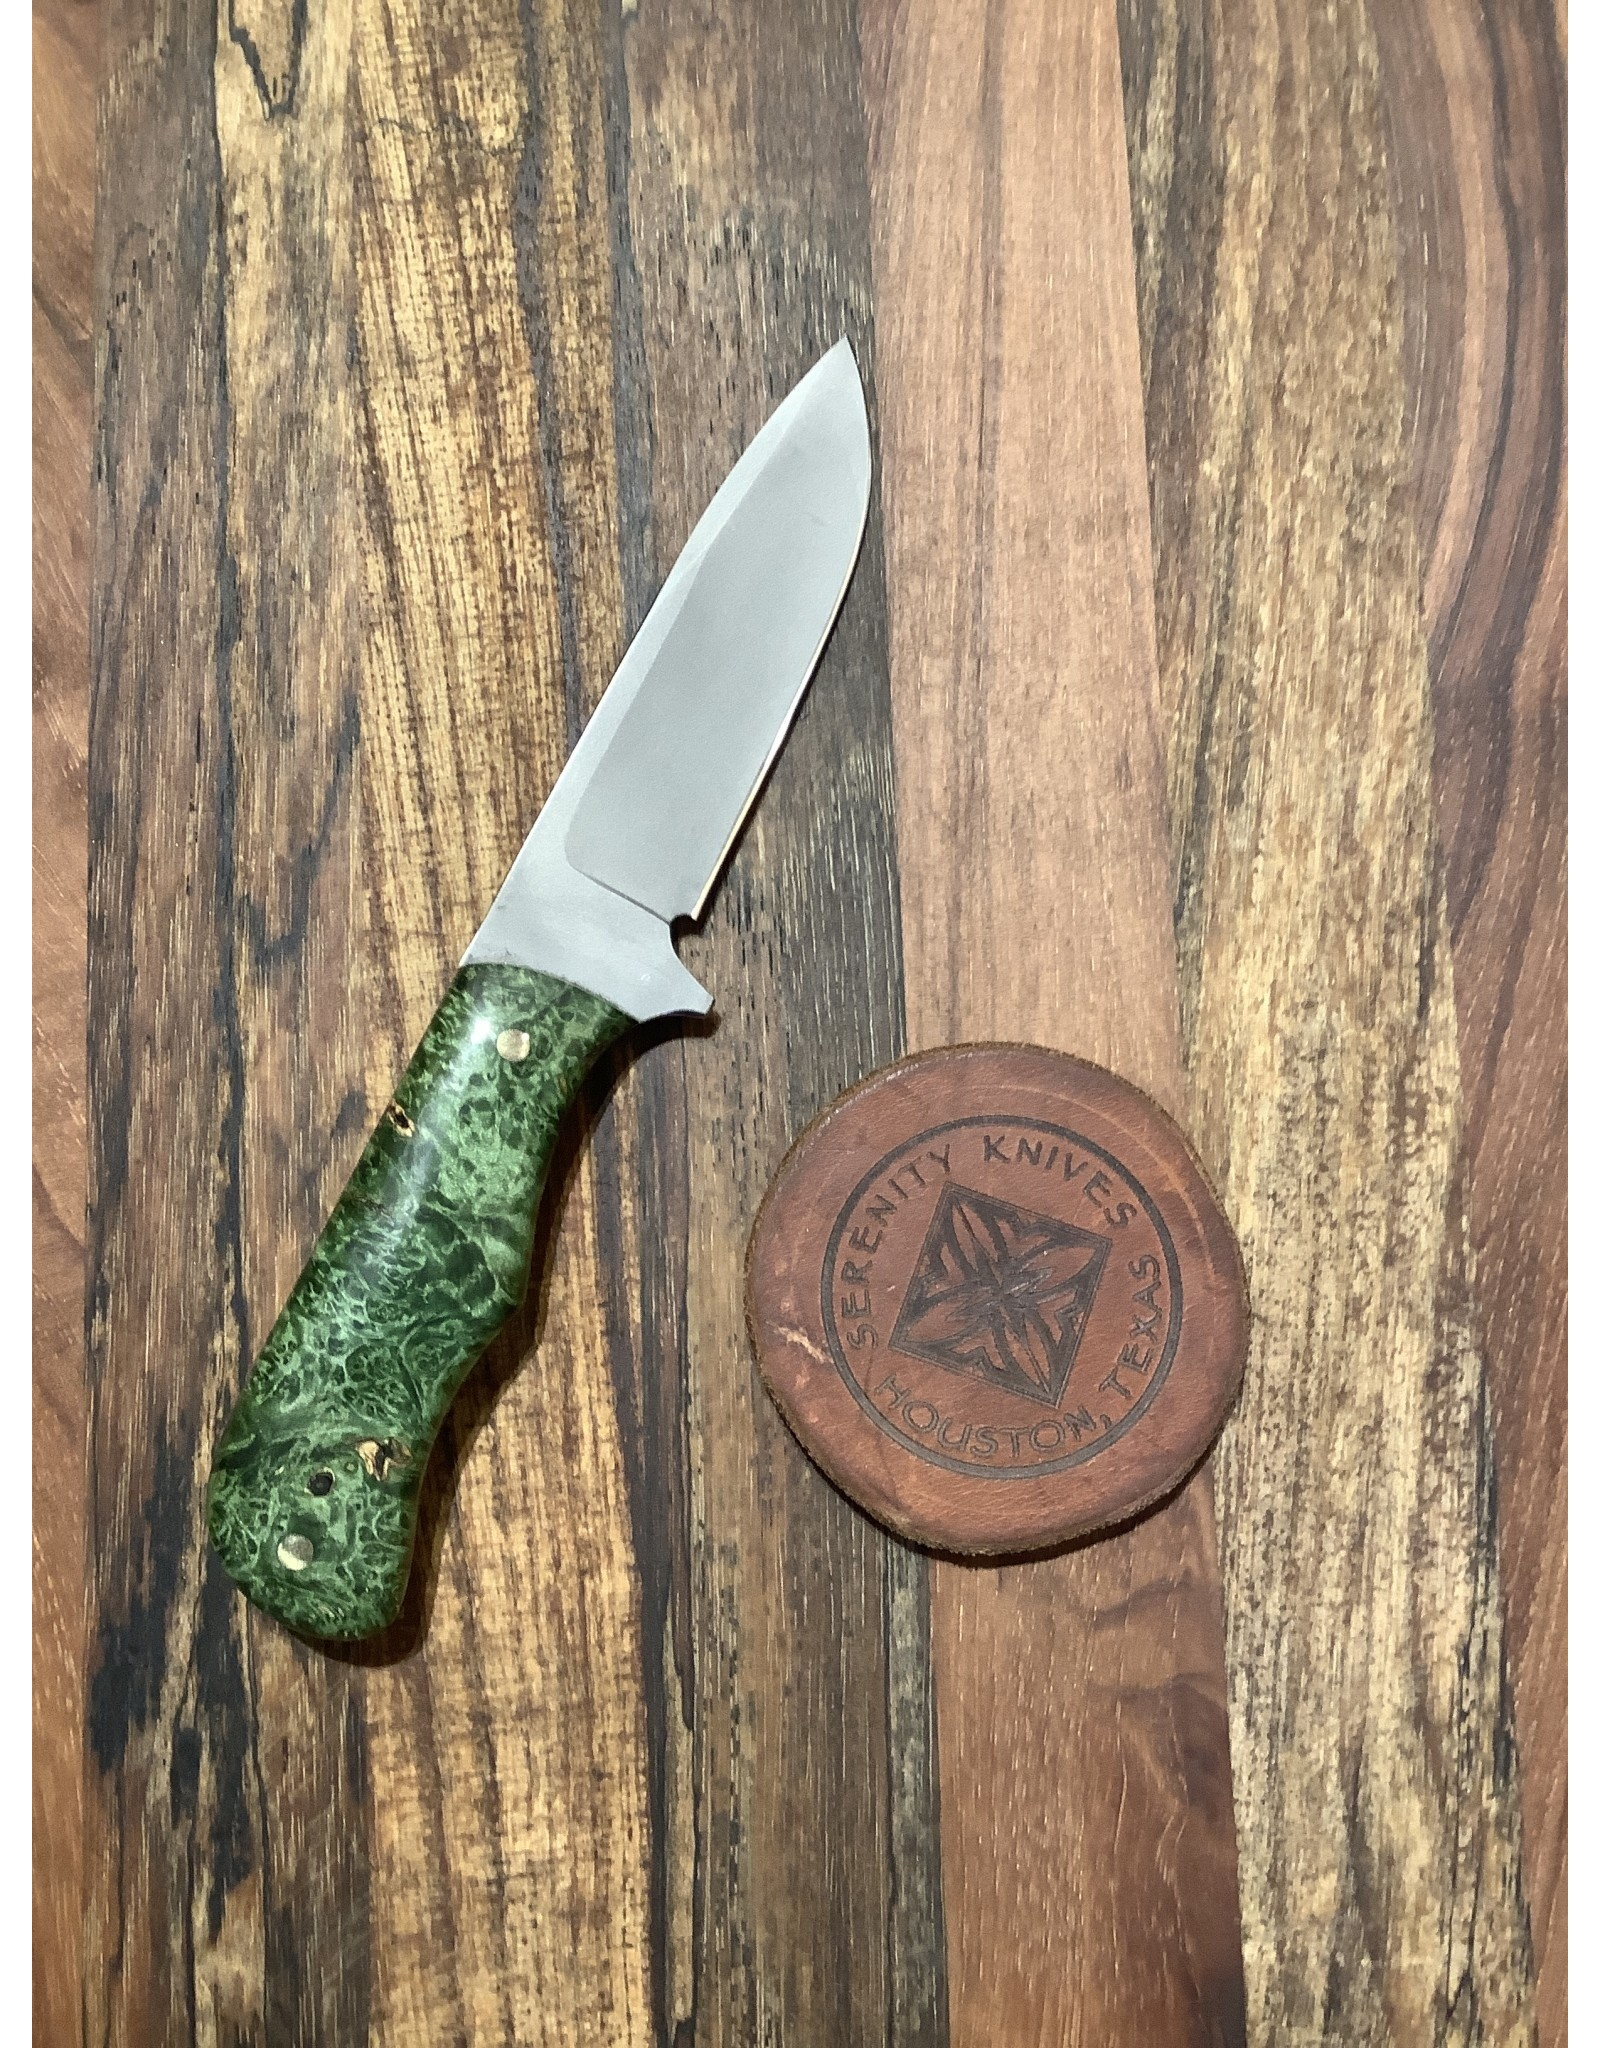 Serenity Small Drop Point Hunter with Green Box Elder